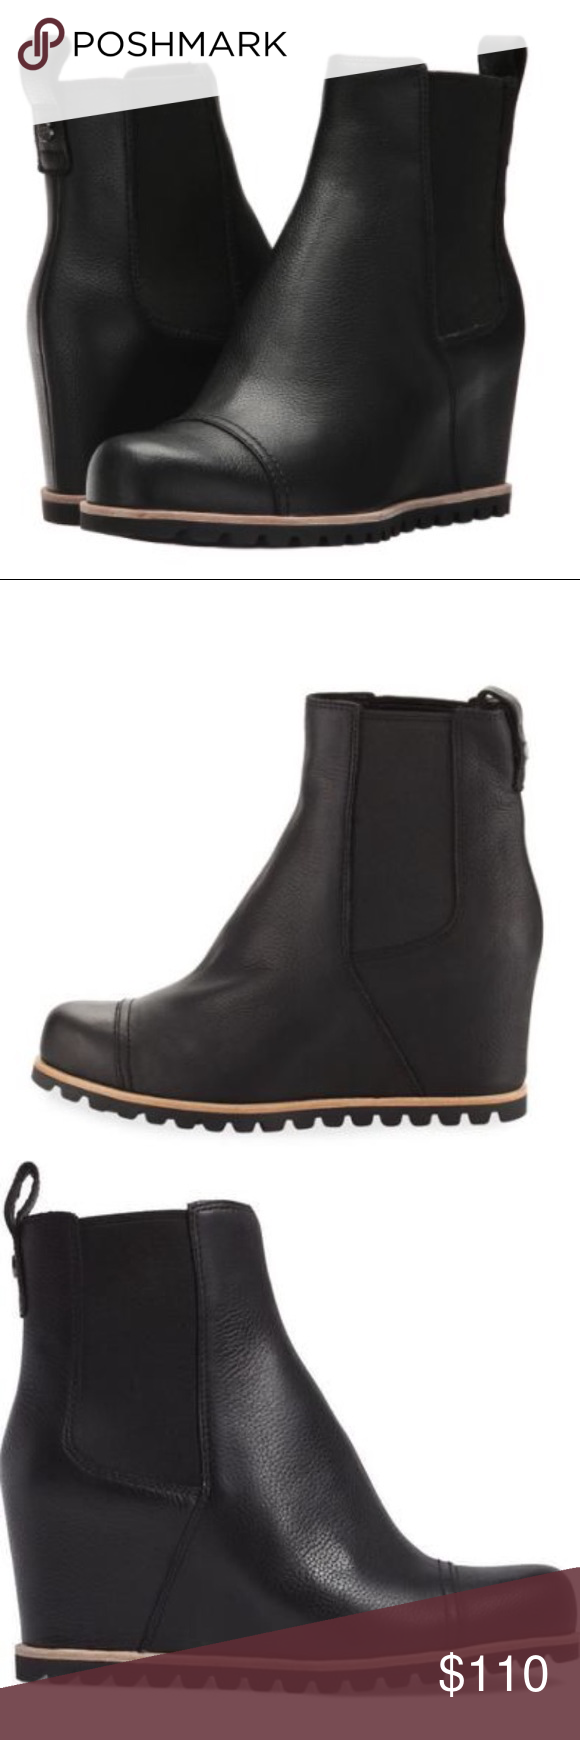 cfa9145c41a ❤️New Ugg Pax Black Leather wedge Boots size 9.5 New Ugg Pax Black ...